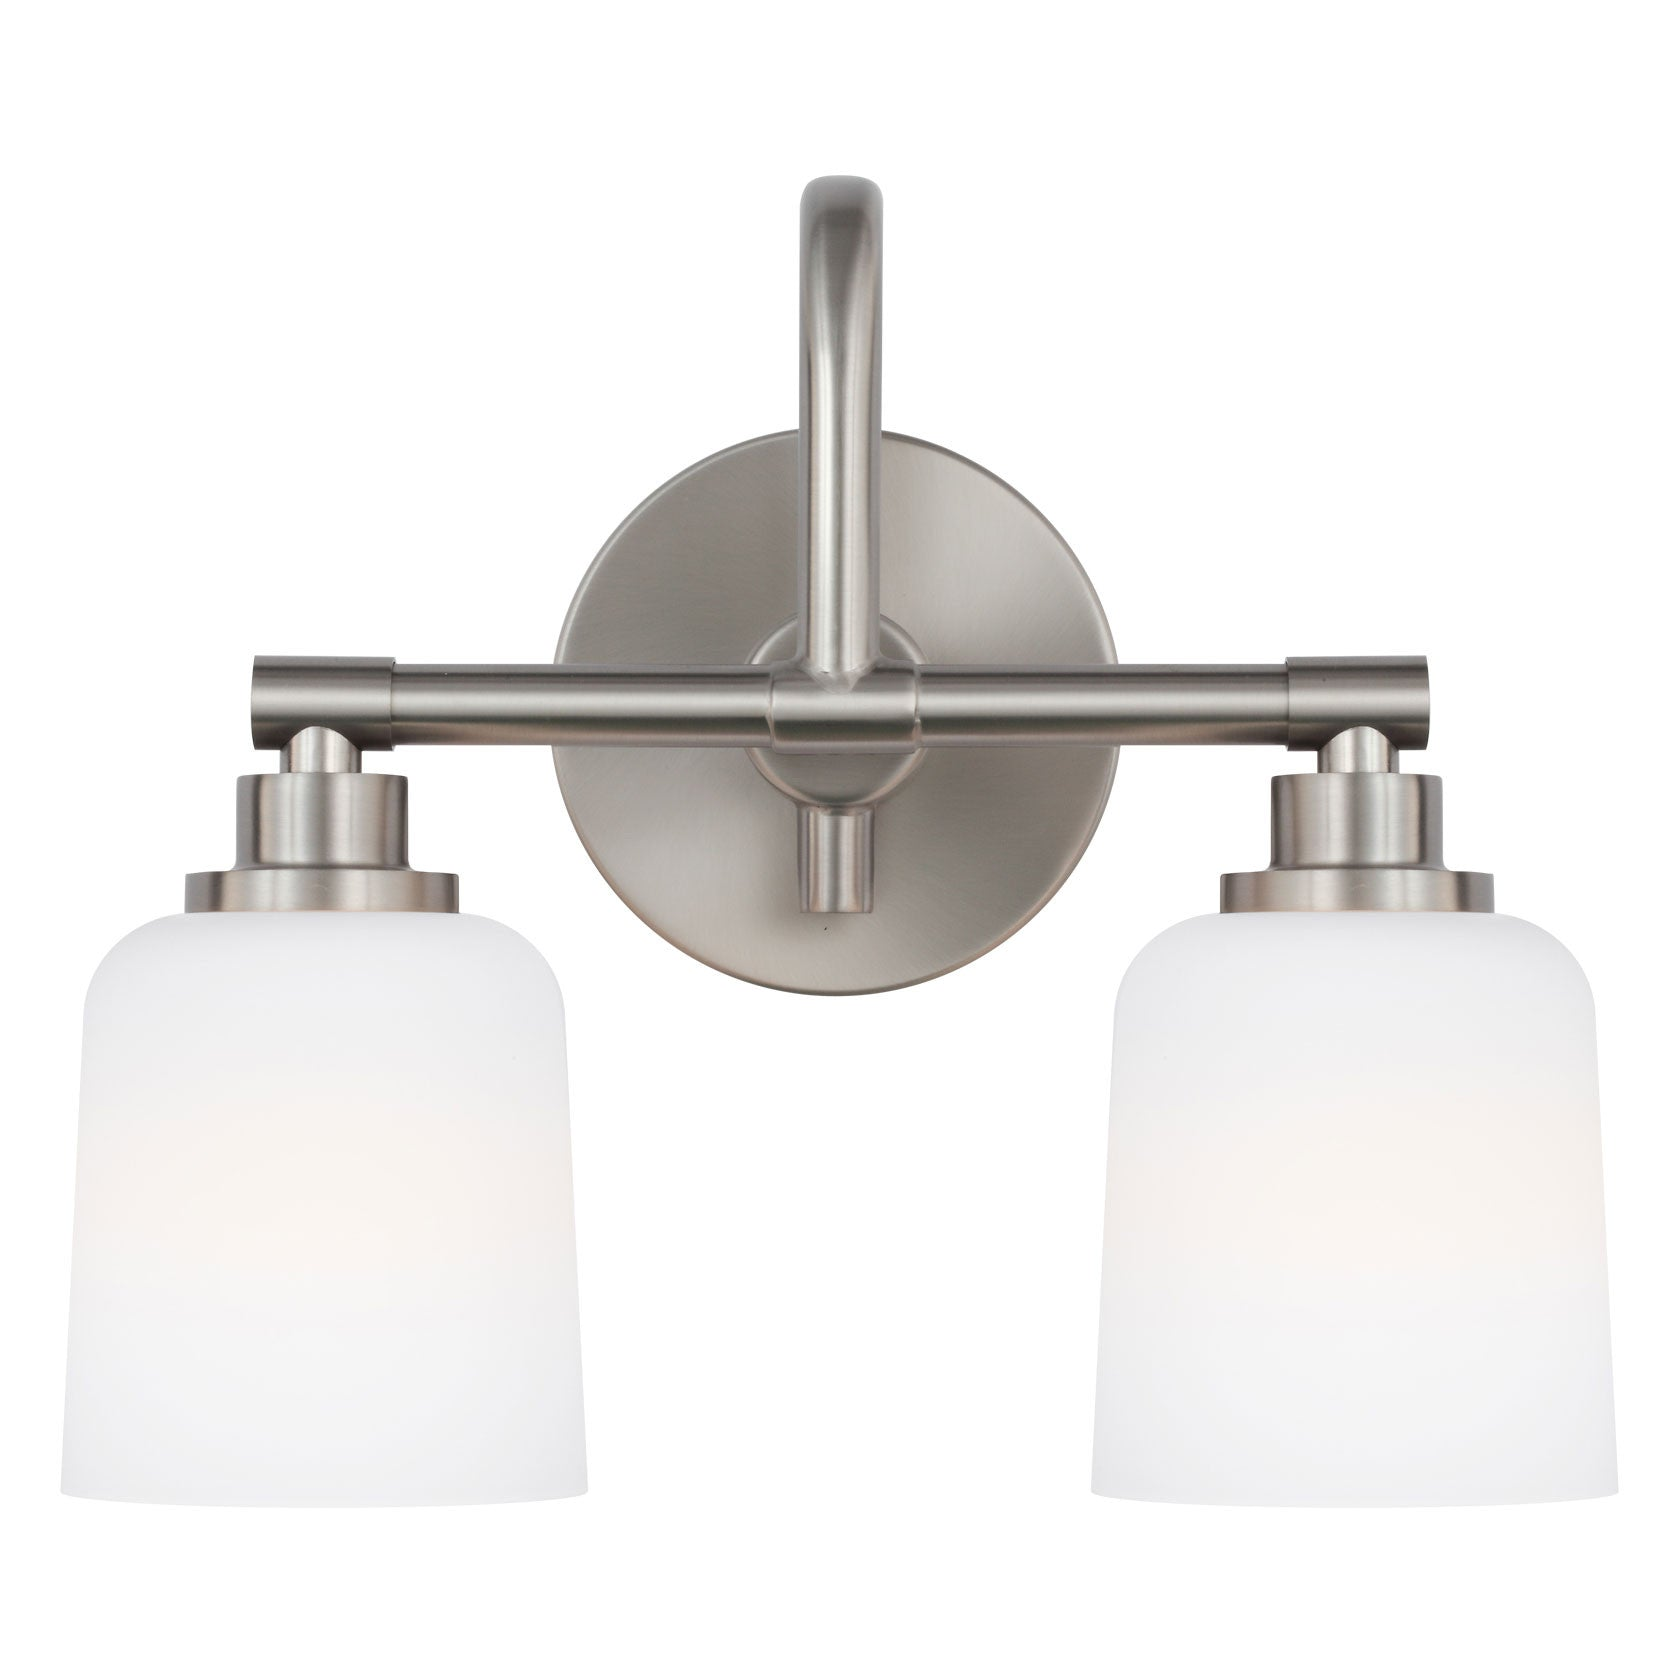 Feiss 2 Light Reiser Vanity Light in Satin Nickel VS23902SN